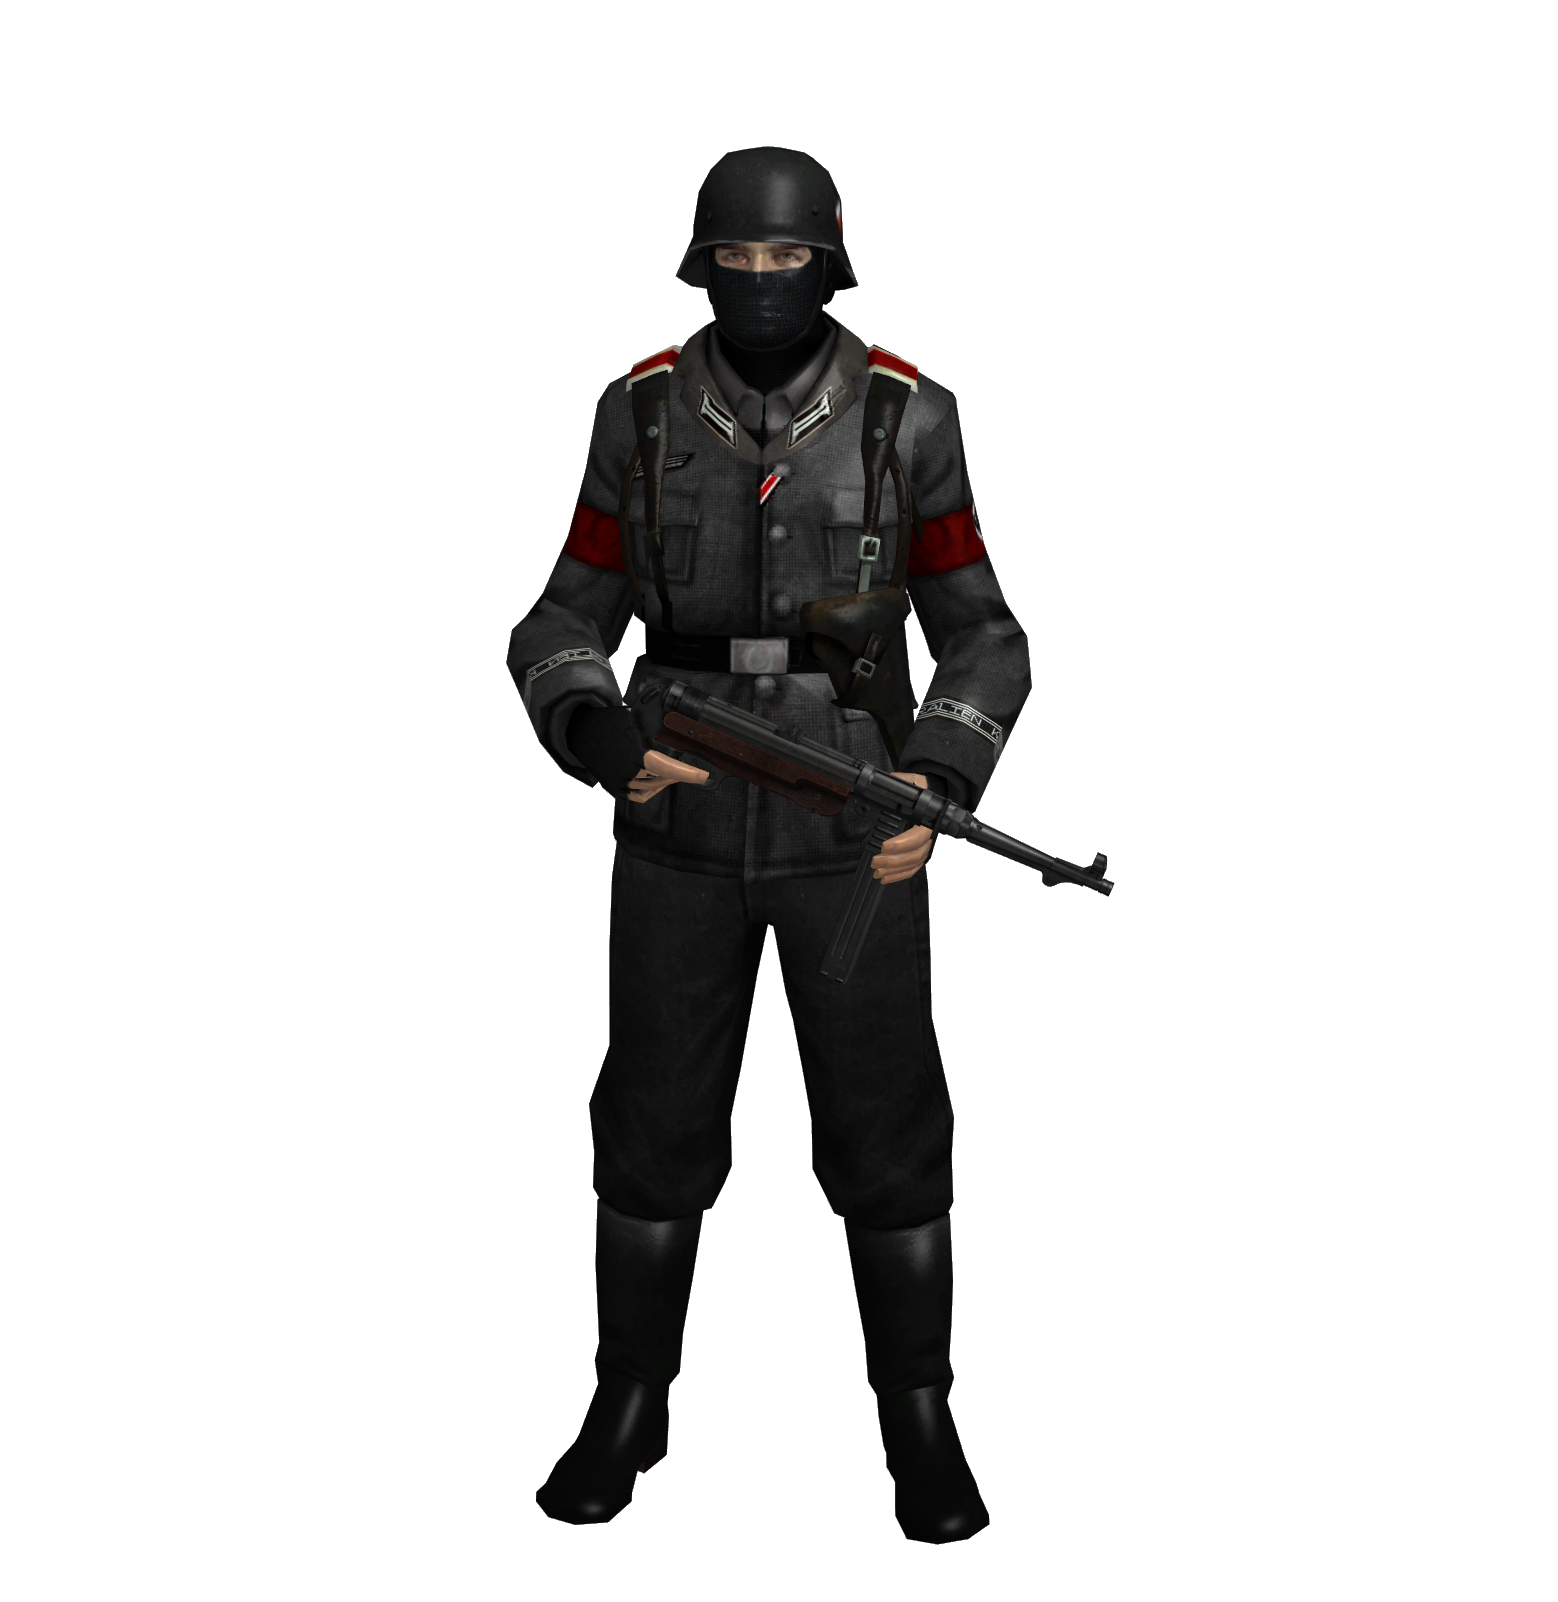 Ww2 soldier png. German ww by bringess